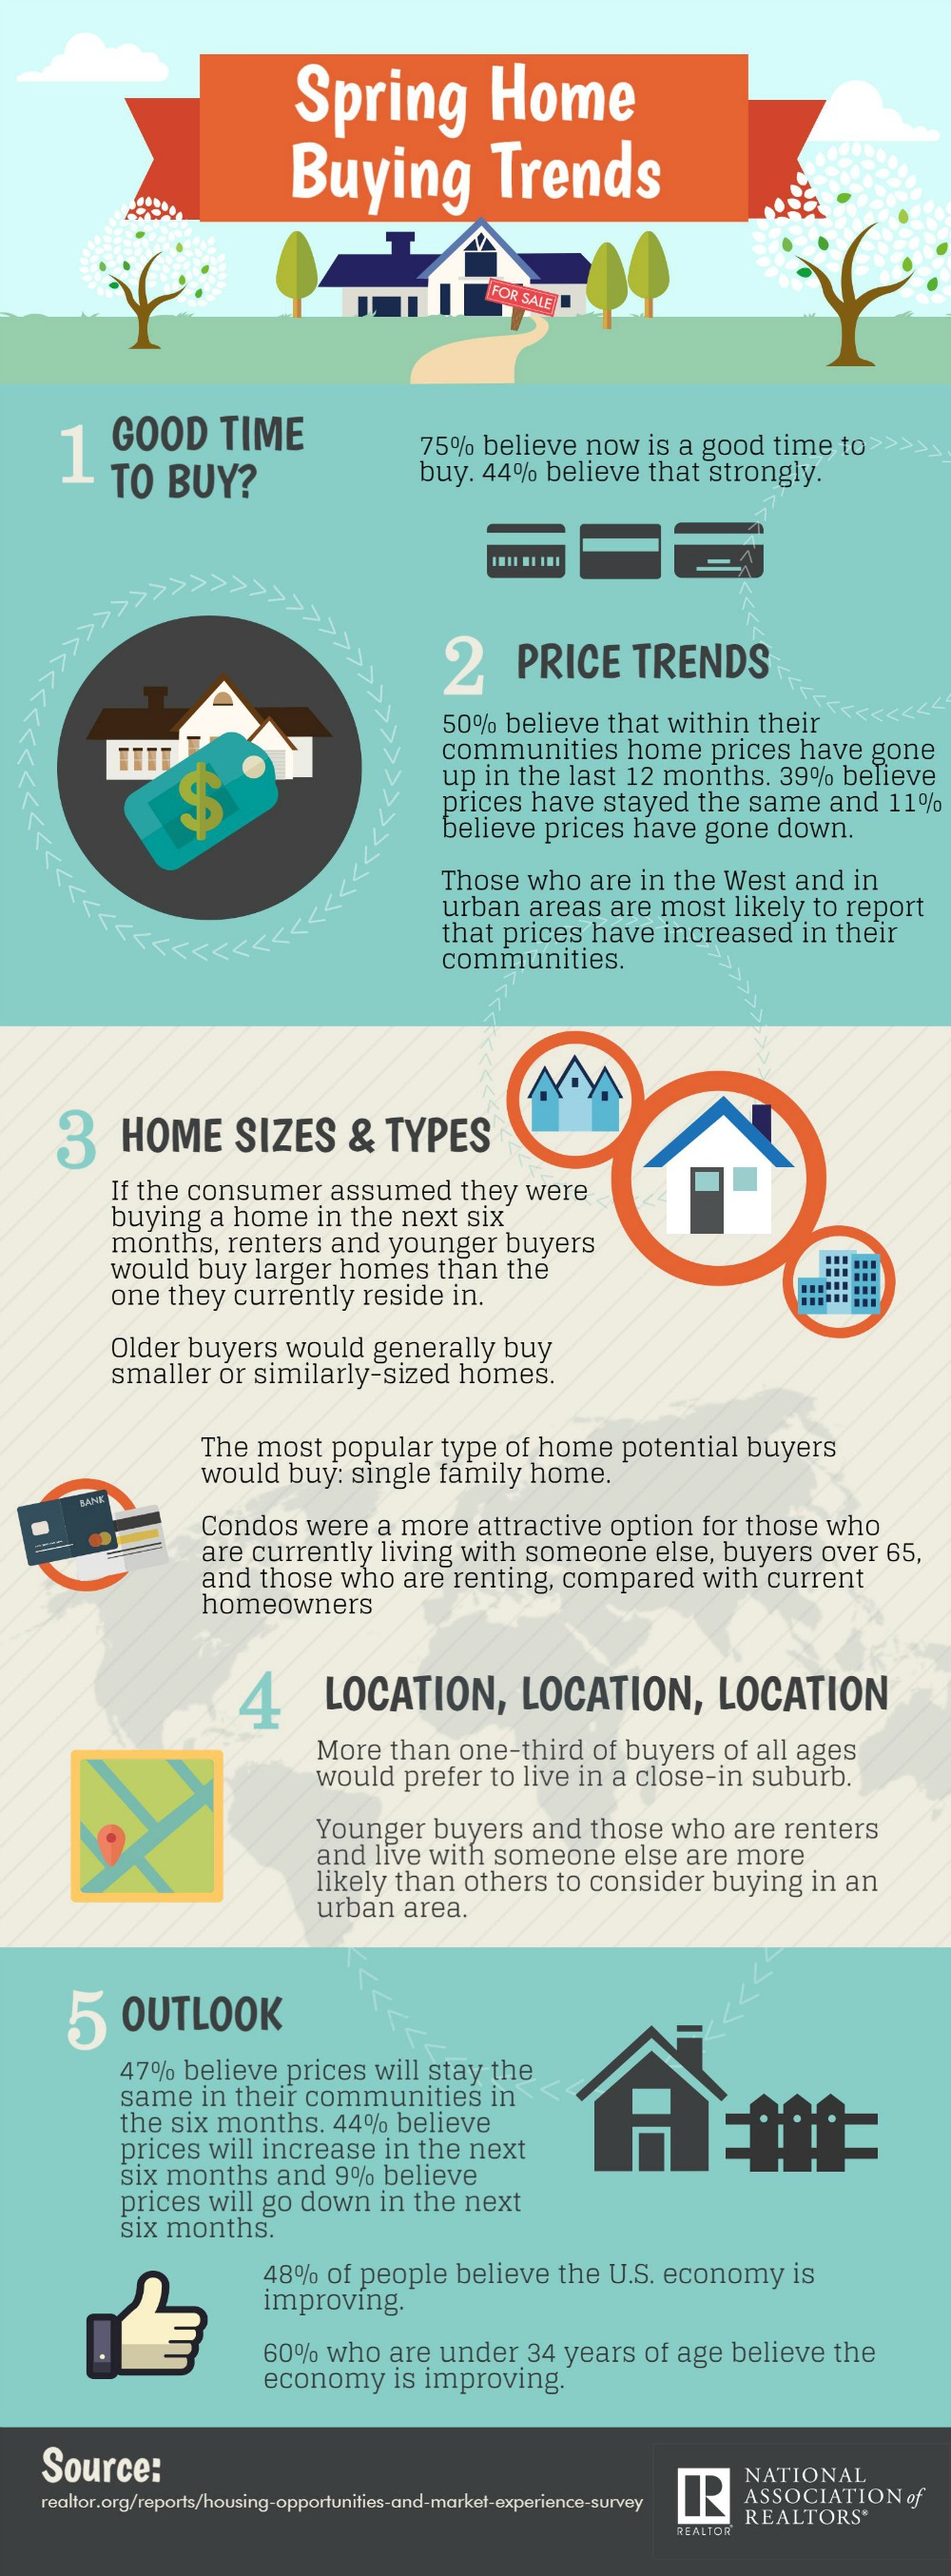 2016-spring-home-buying-trends-infographic